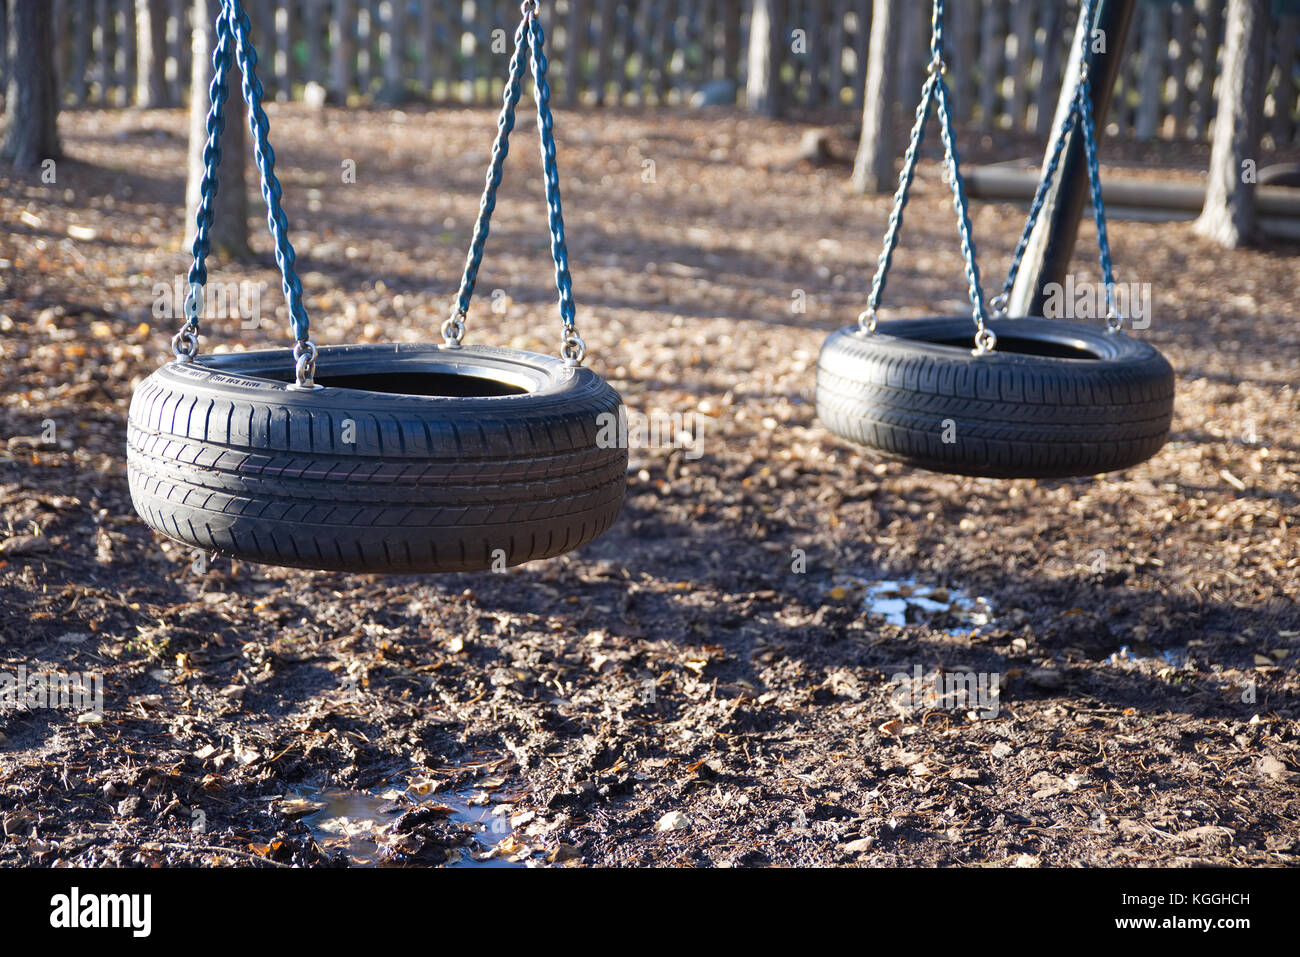 A Tire Swing Set On A Playground In Autumn Stock Photo 165092721